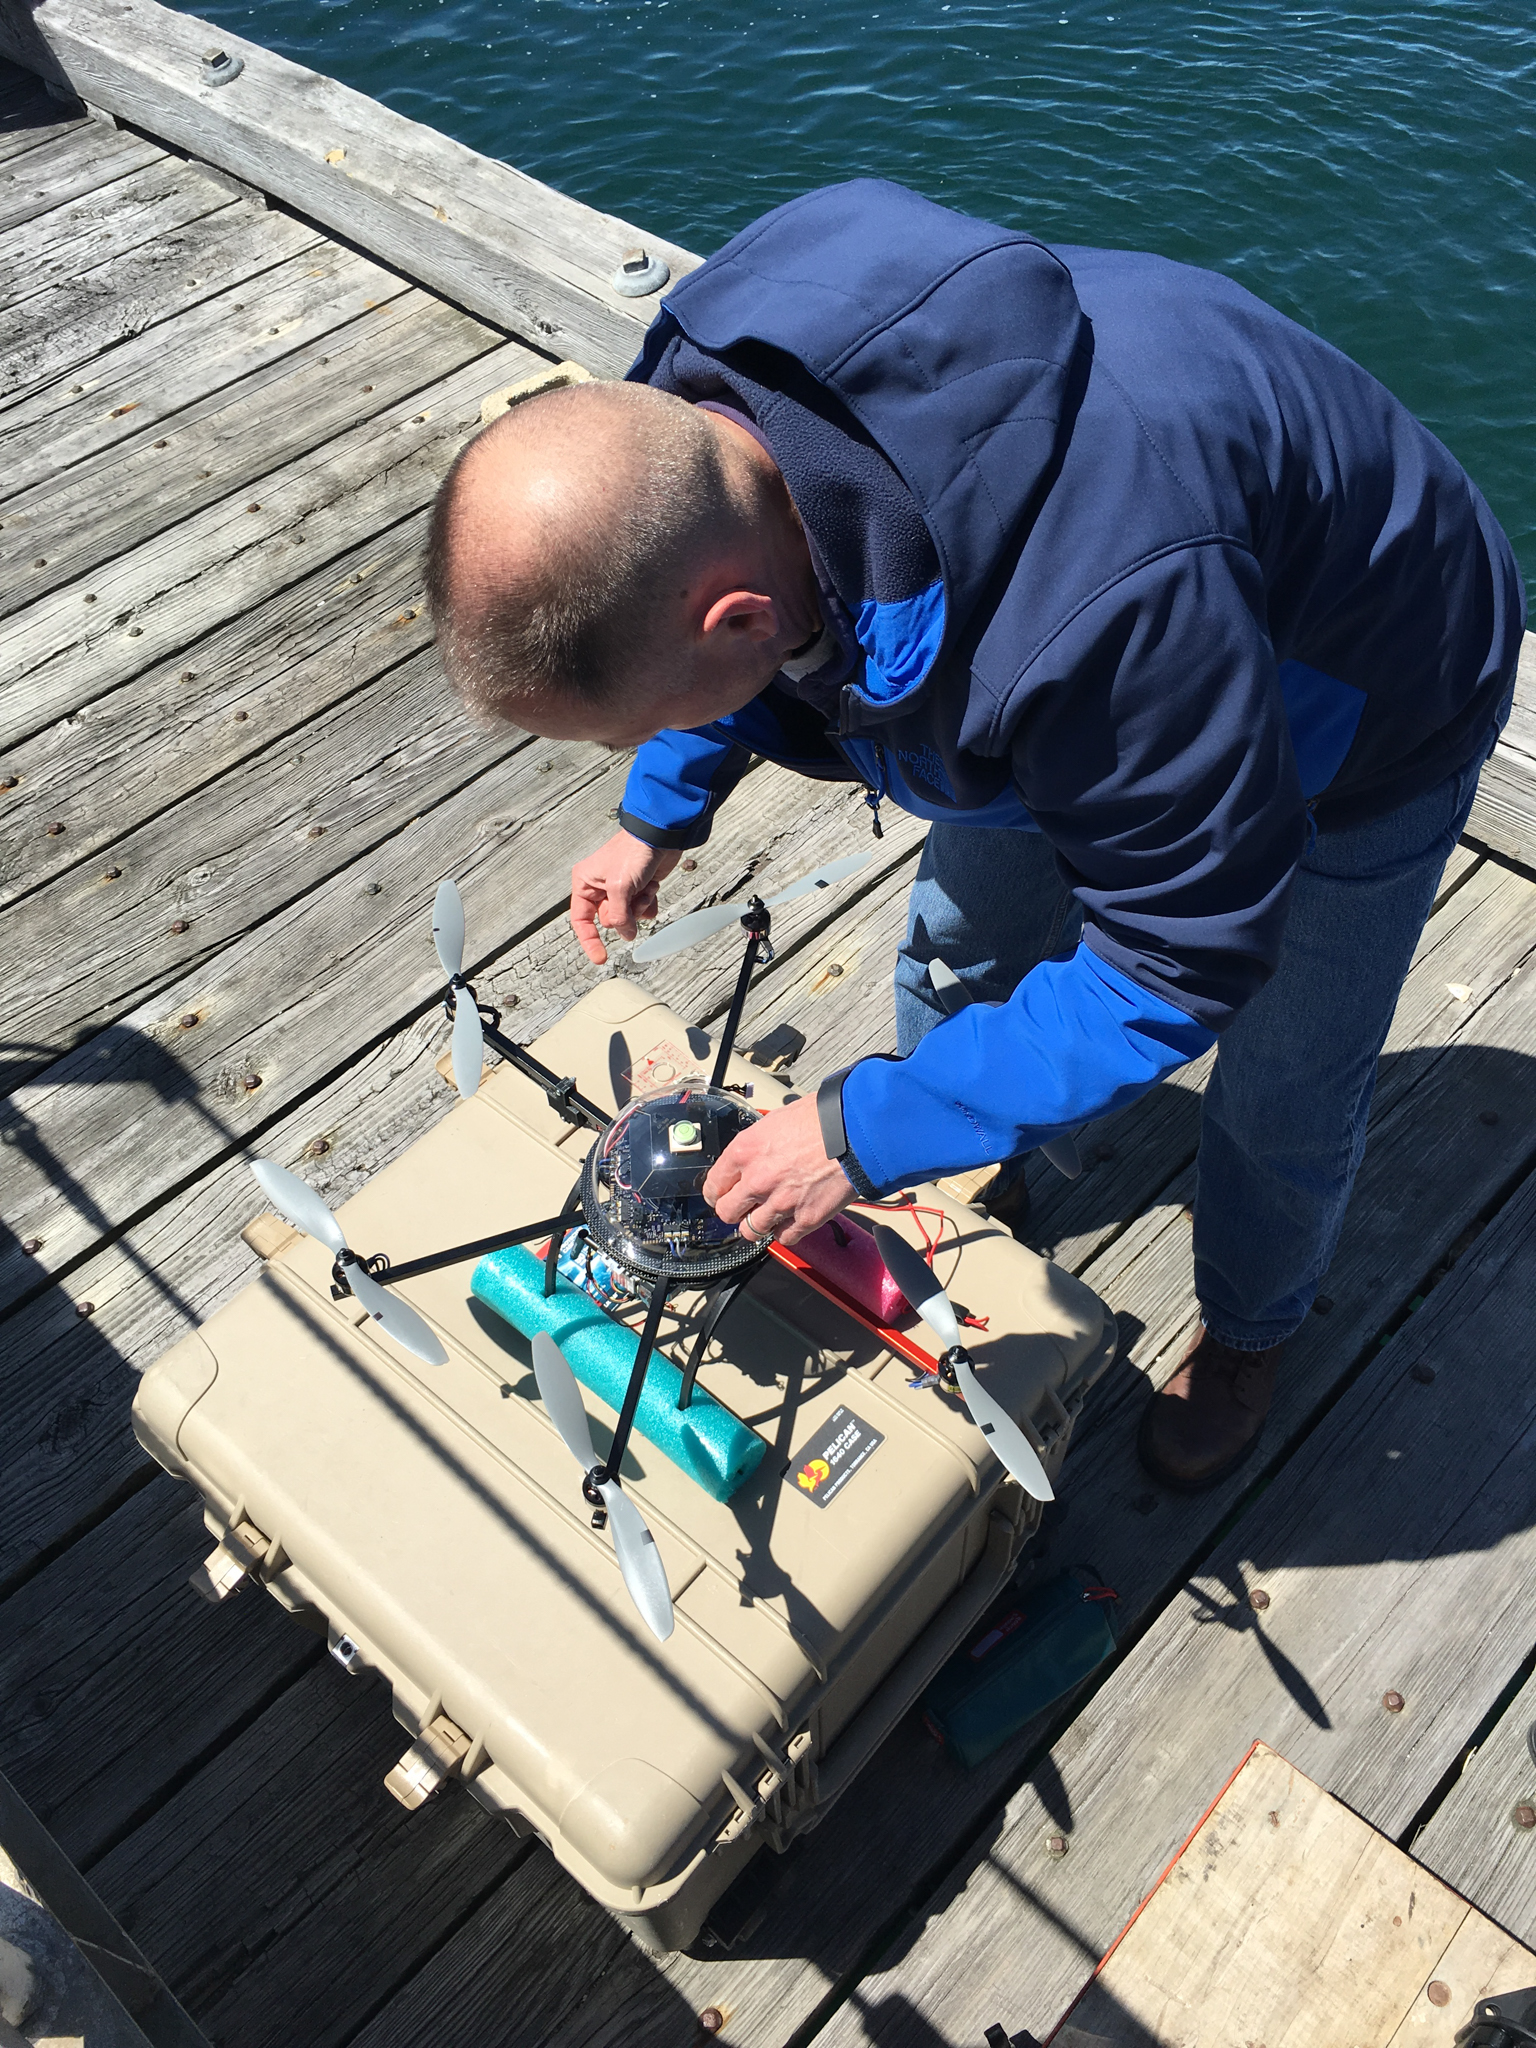 Mike Jech prepares the NOAA drone (Ginger) for launch, Woods Hole, Massachusetts. Photo by Nicola Twilley